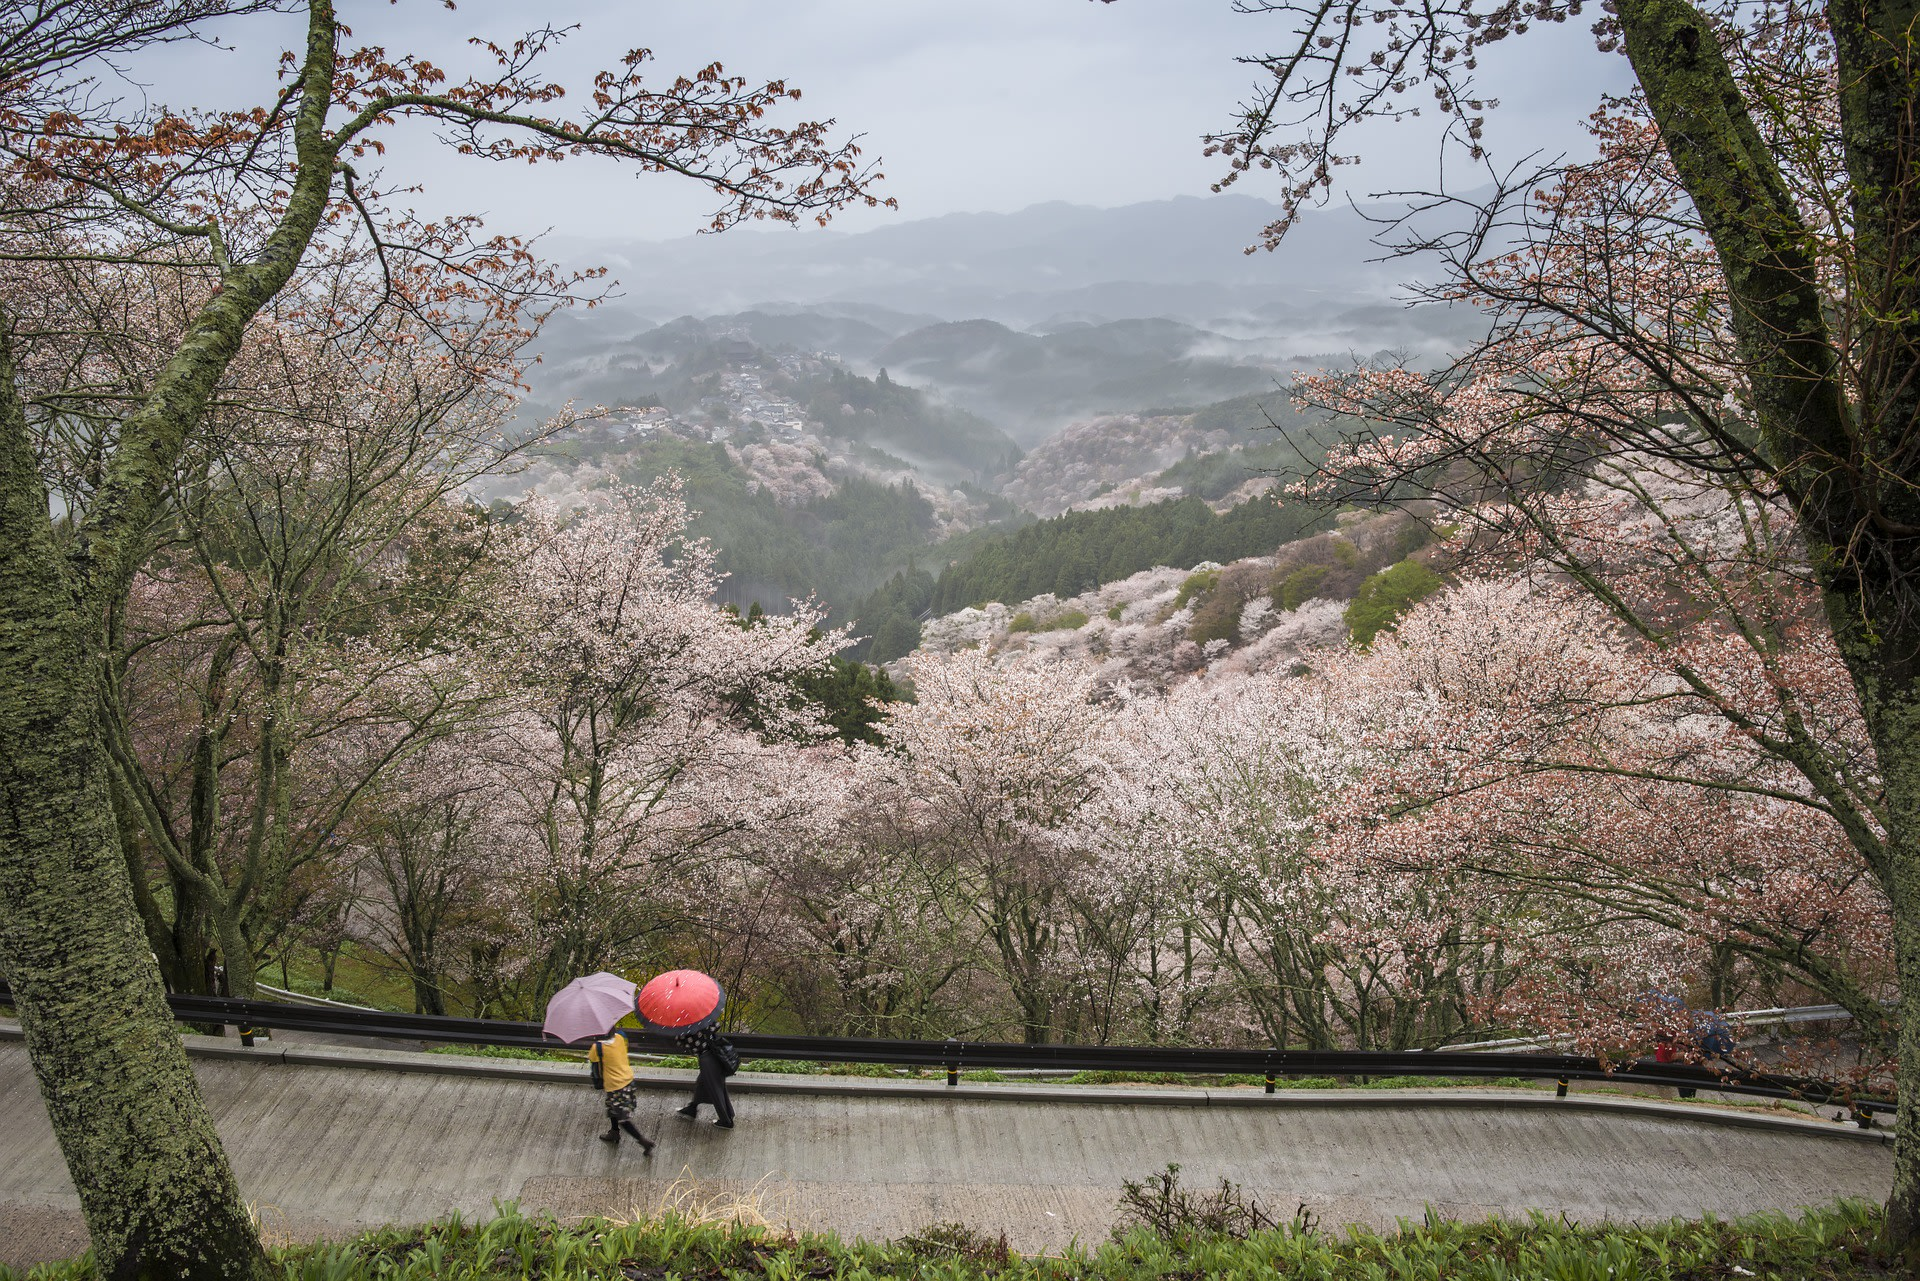 Cherry Blossoms galore in Nara